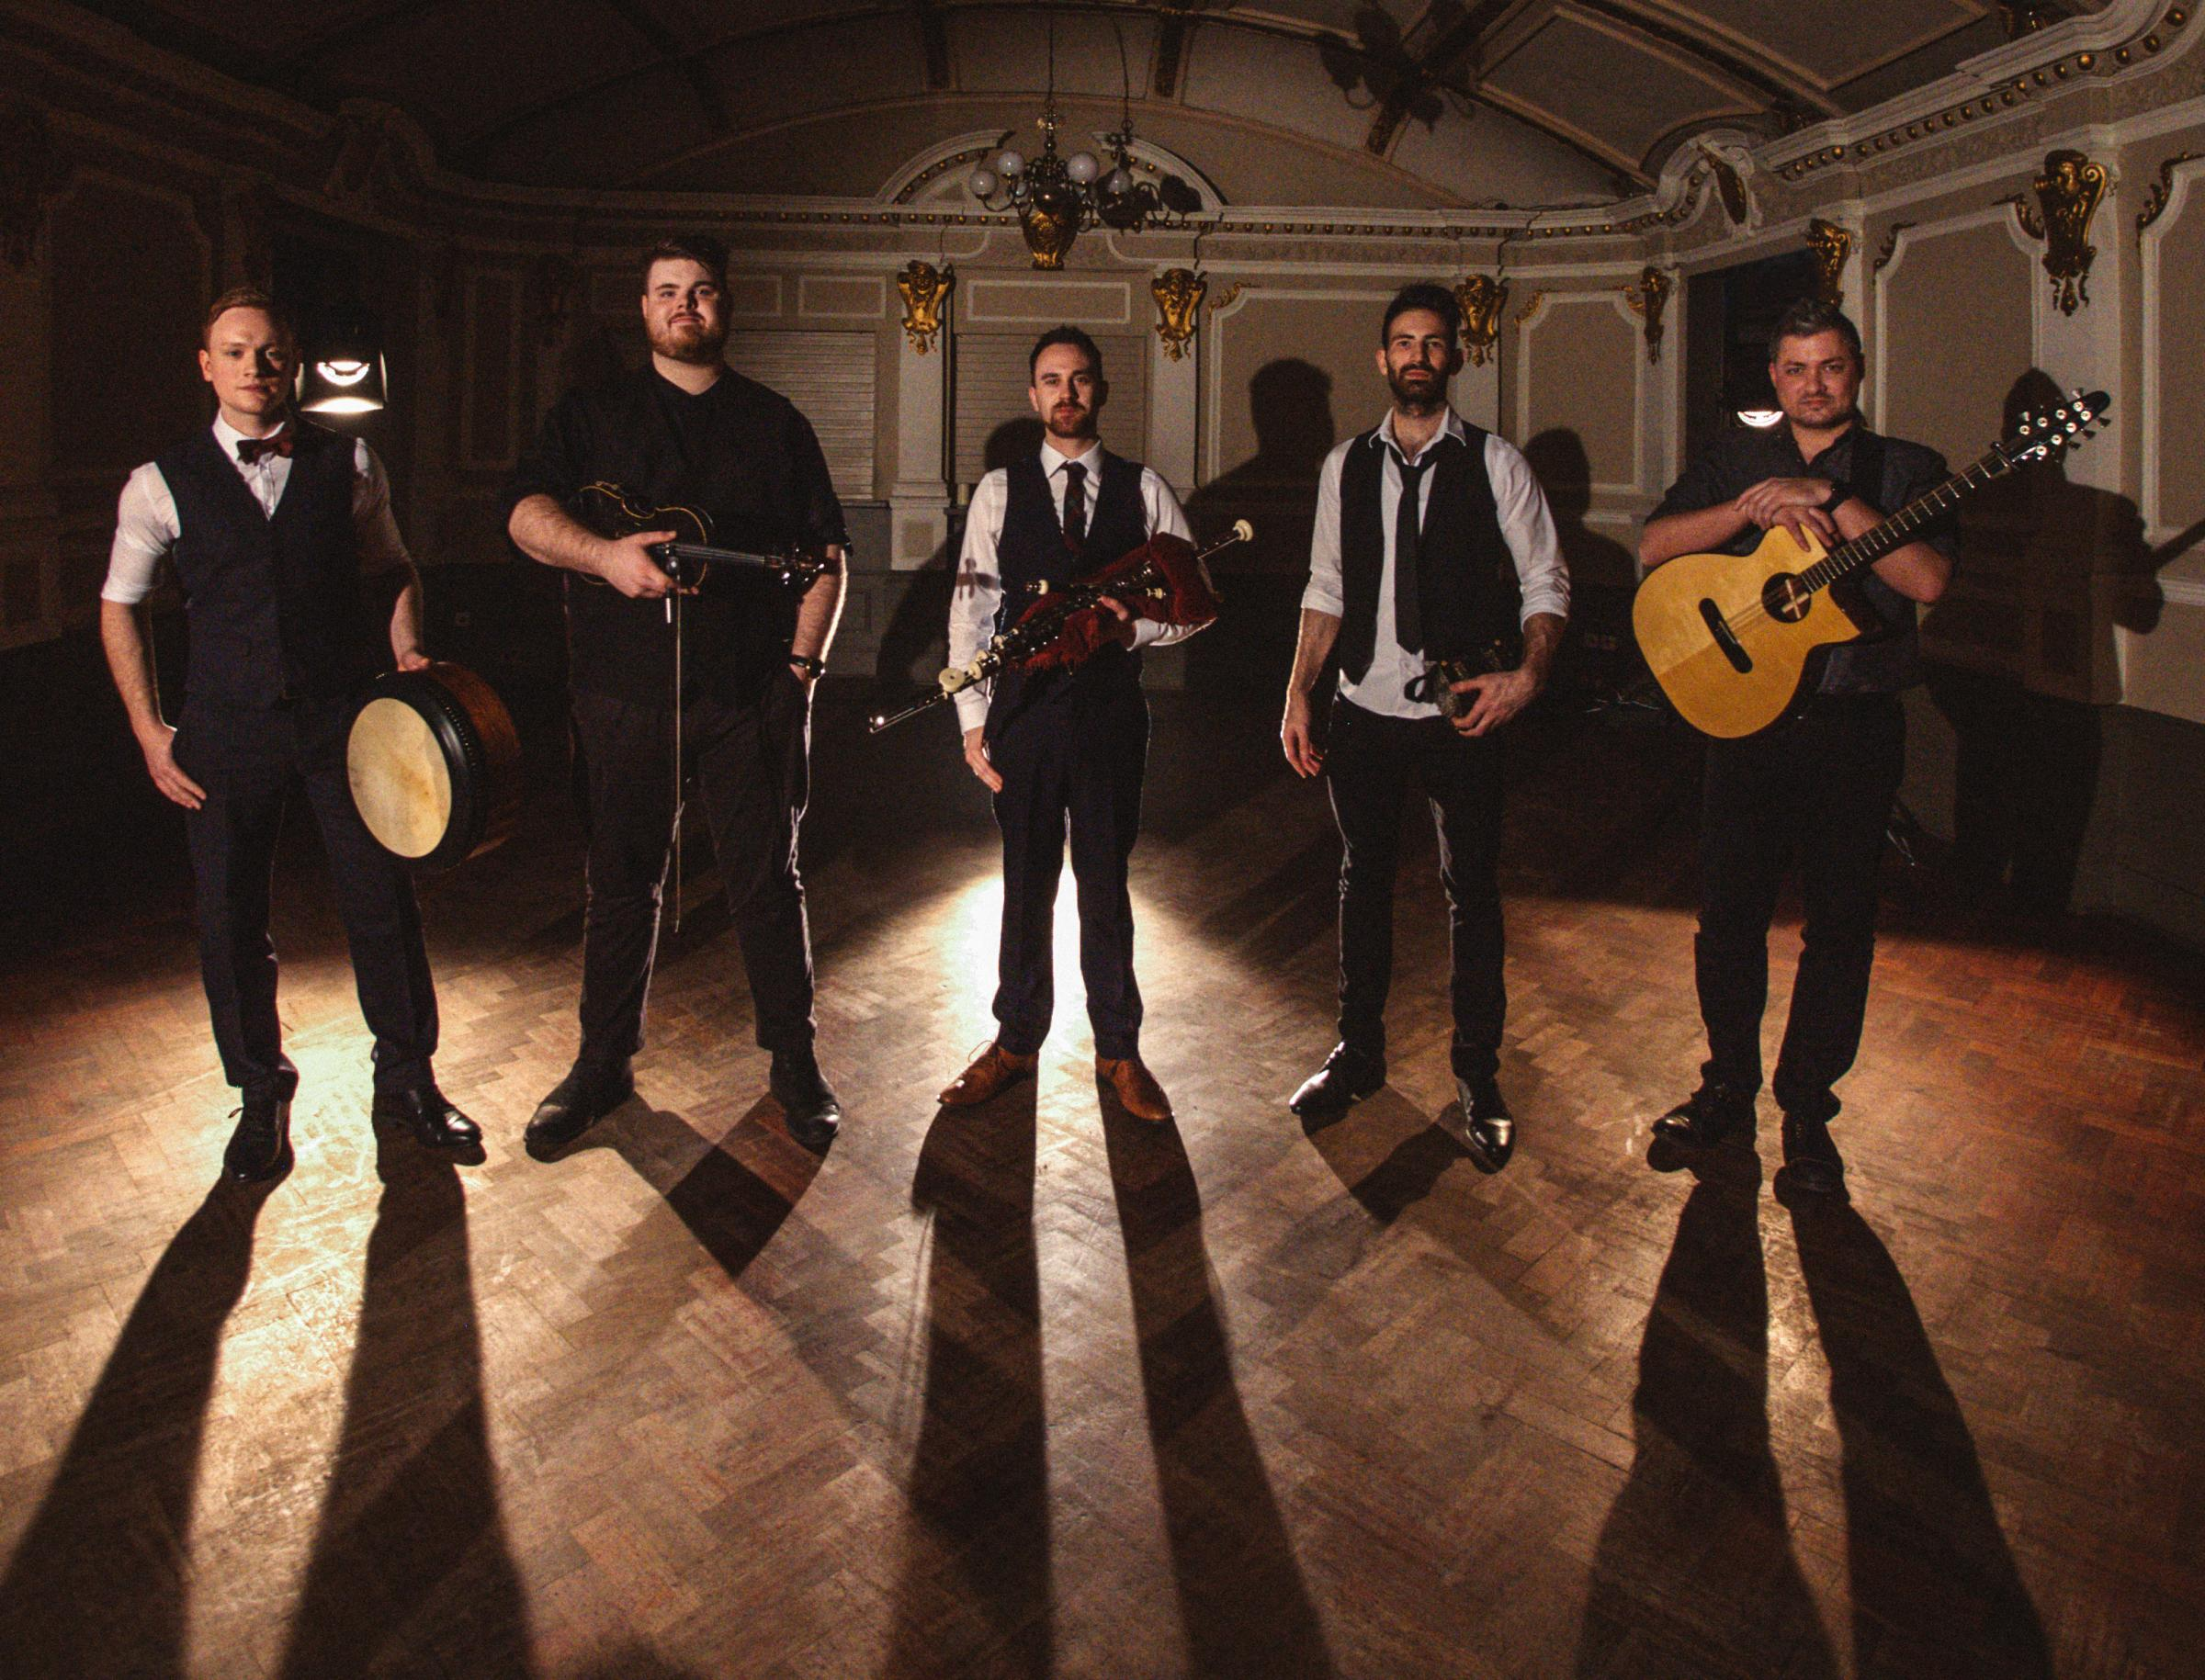 Celtic group, Imar, are performing at Otley Courthouse on May 11